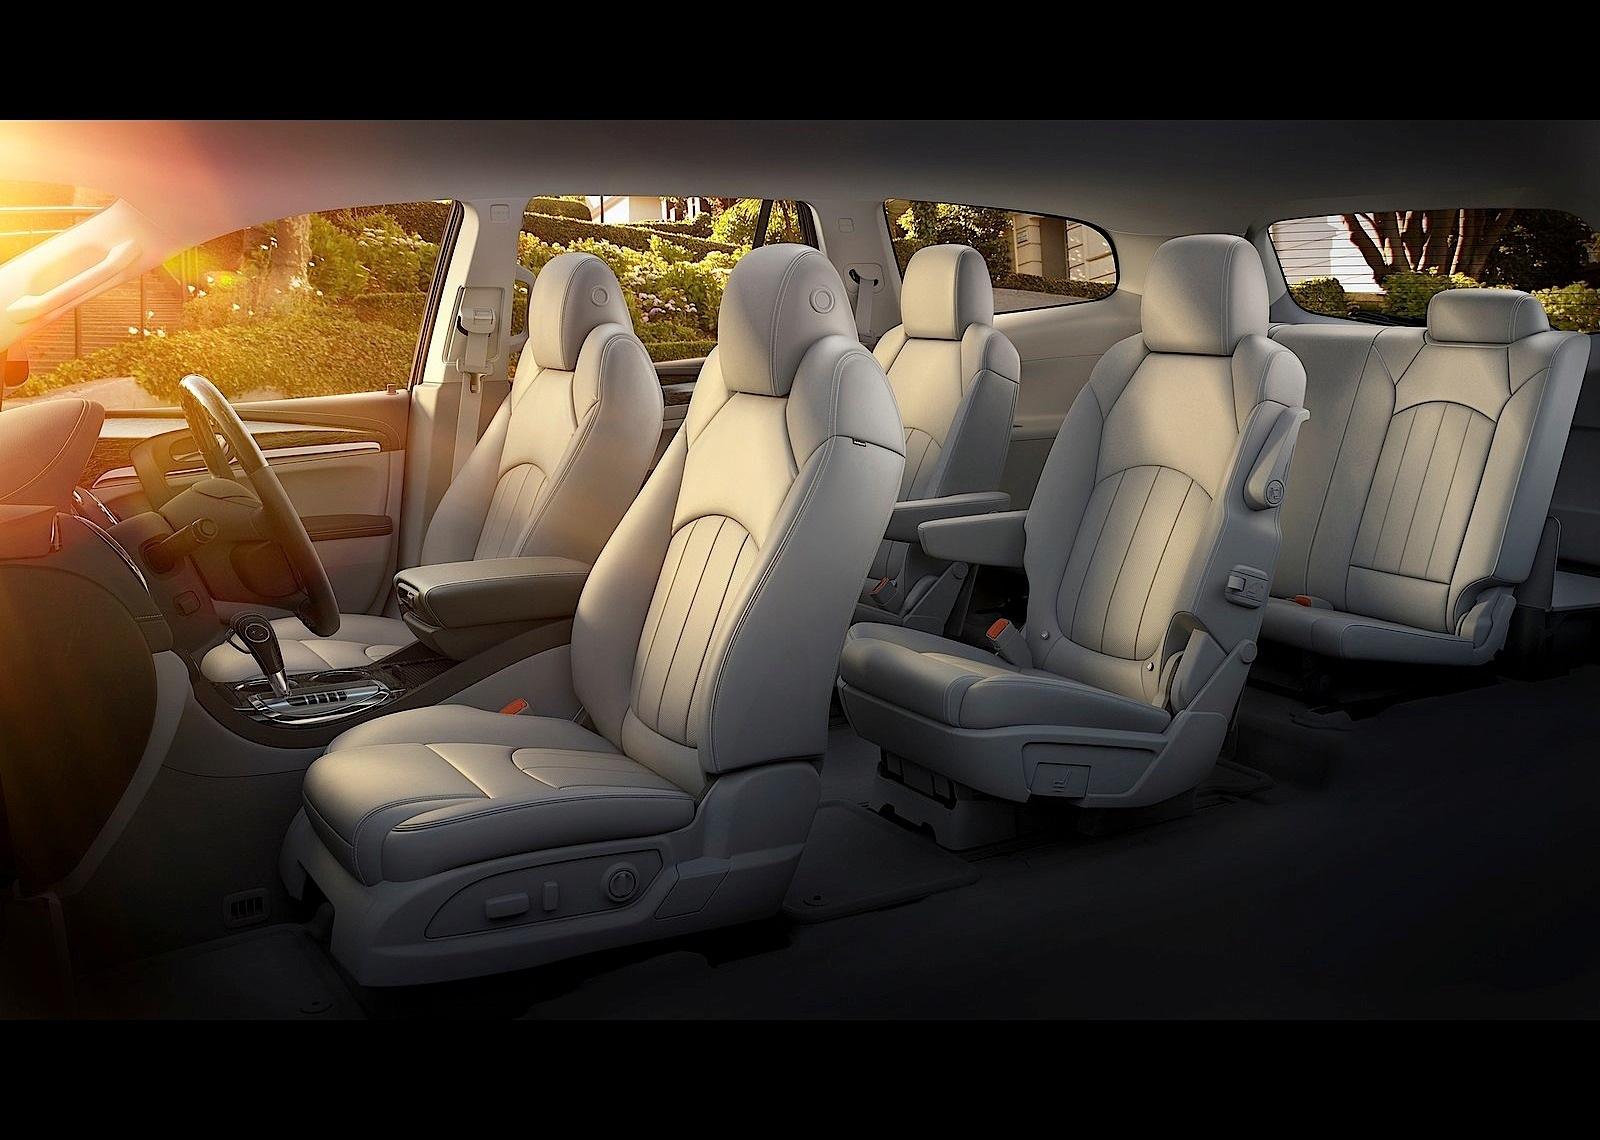 suv with 3 rows and captains chairs shabby chic dining chair slipcovers buick enclave specs 2012 2013 2014 2015 2016 2017